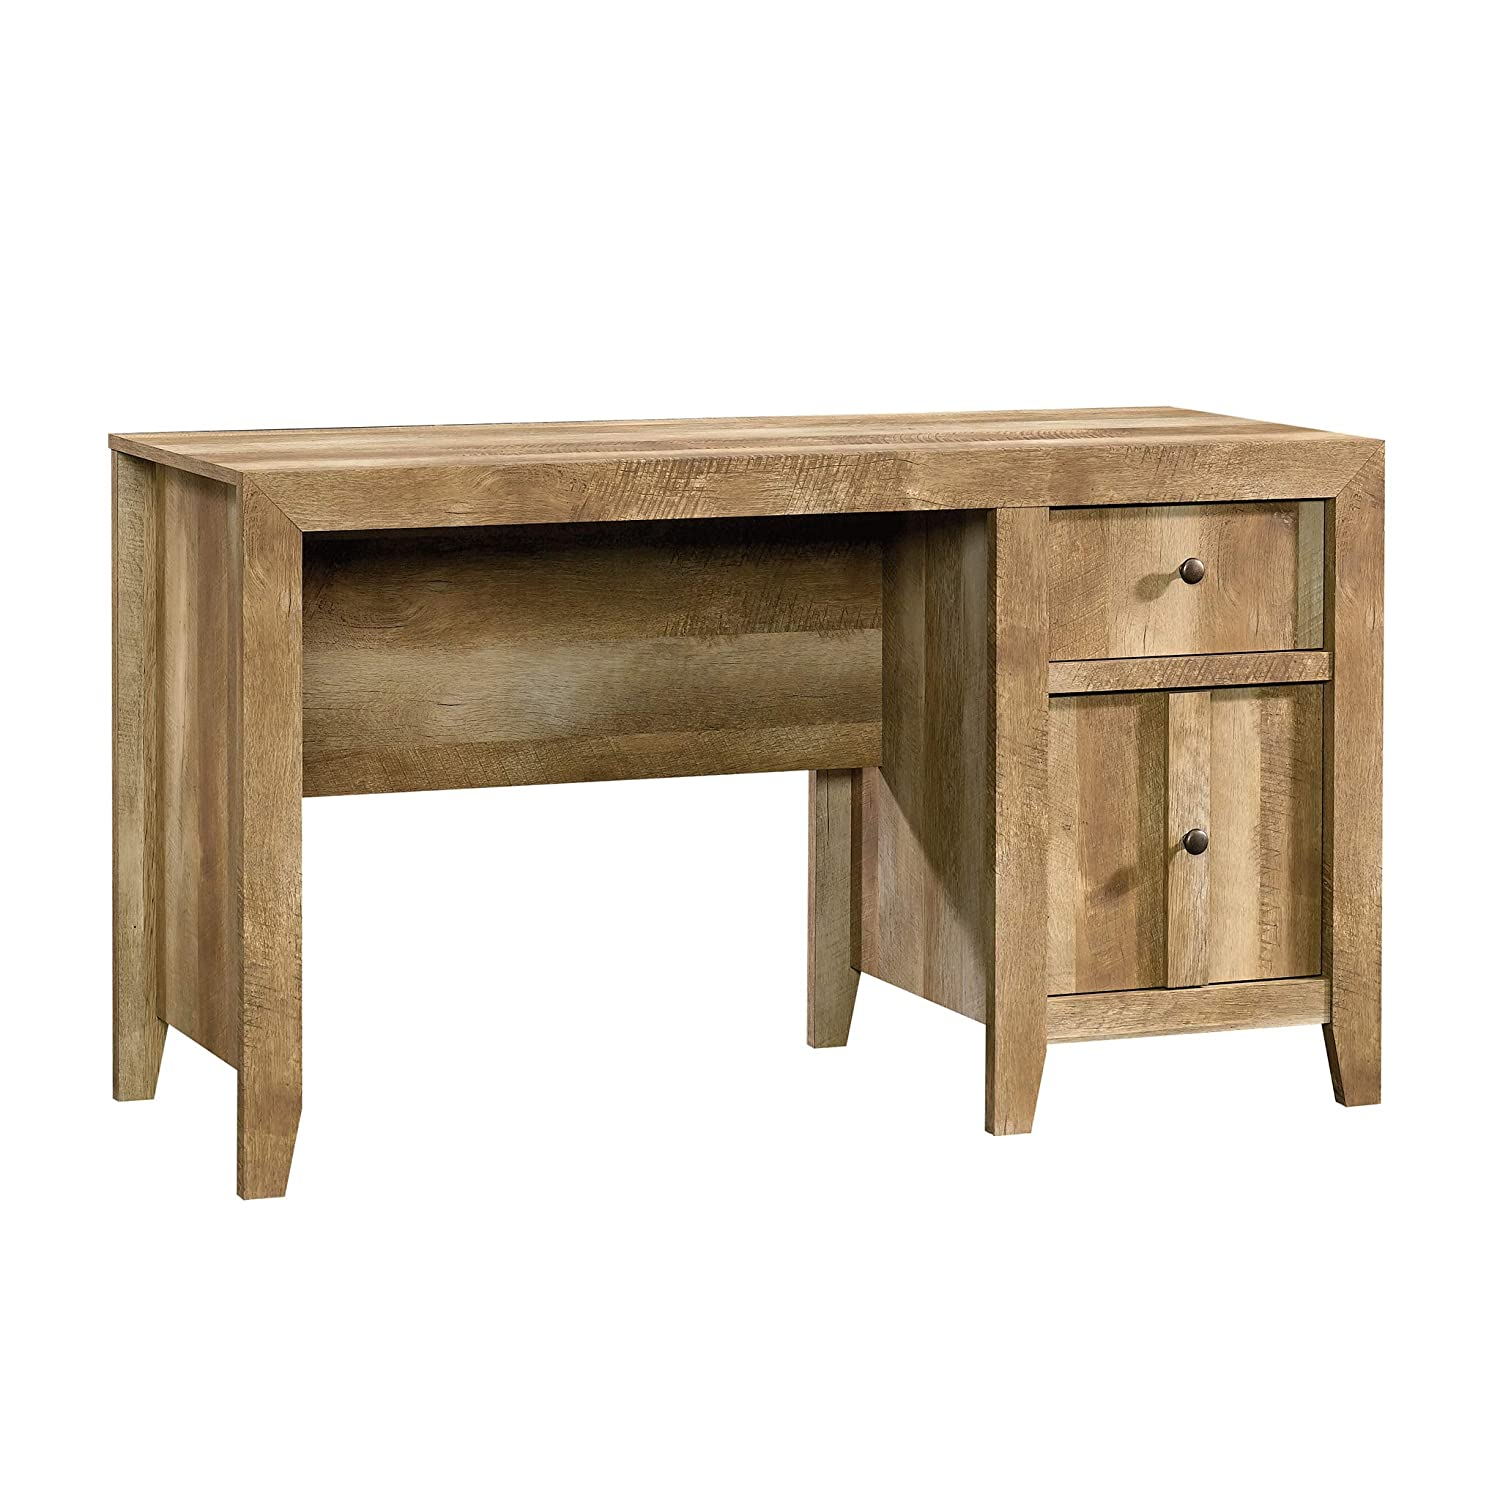 "Sauder 420196 Dakota Pass Desk 53.15"" L x 21.50"" W x 30"" H Craftsman Oak Finish"